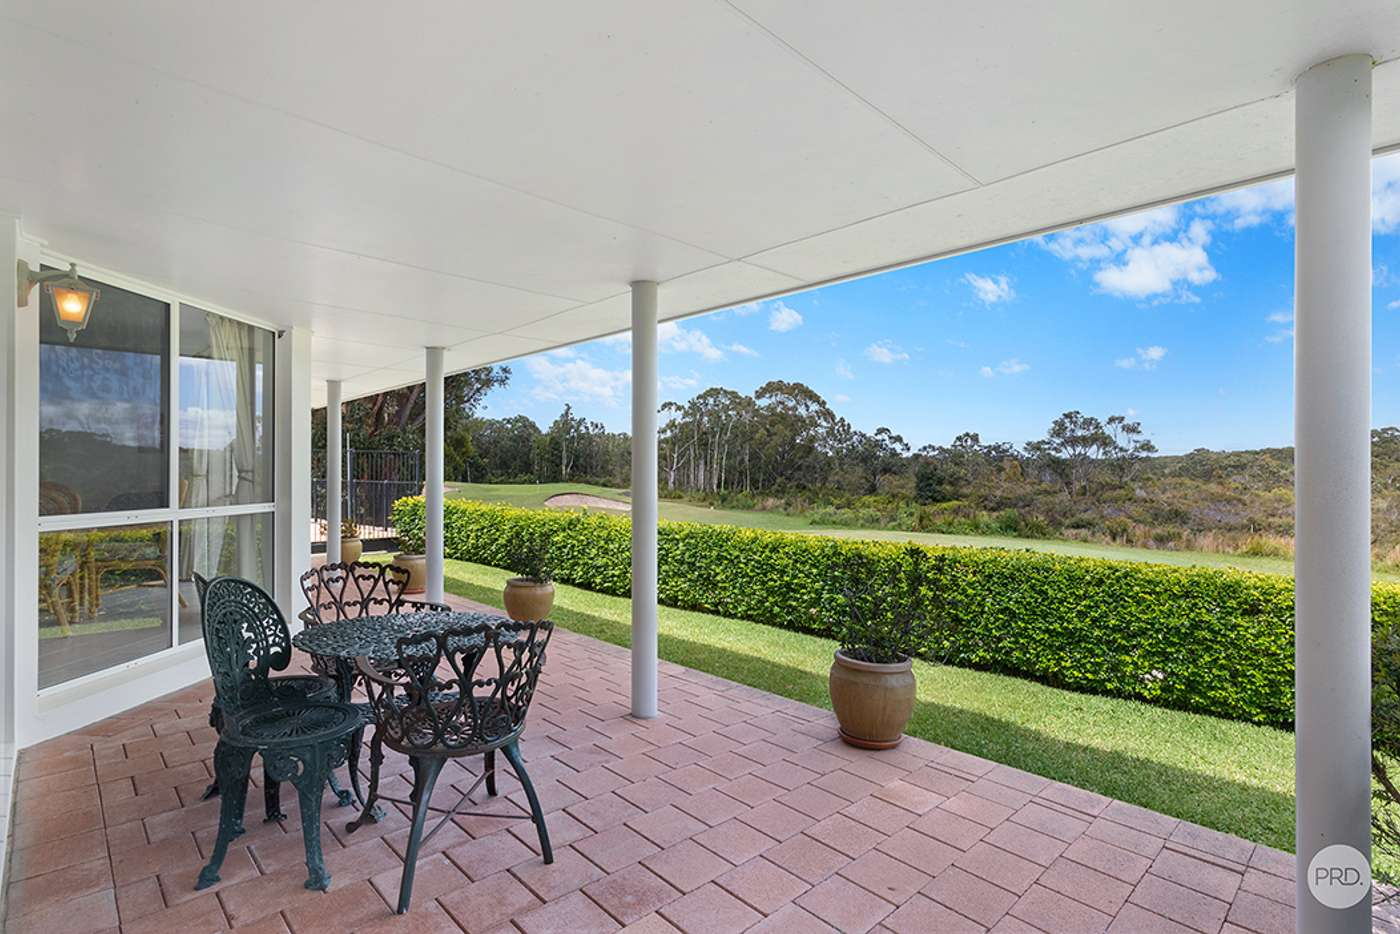 Seventh view of Homely house listing, 8 Sanderling Close, Salamander Bay NSW 2317